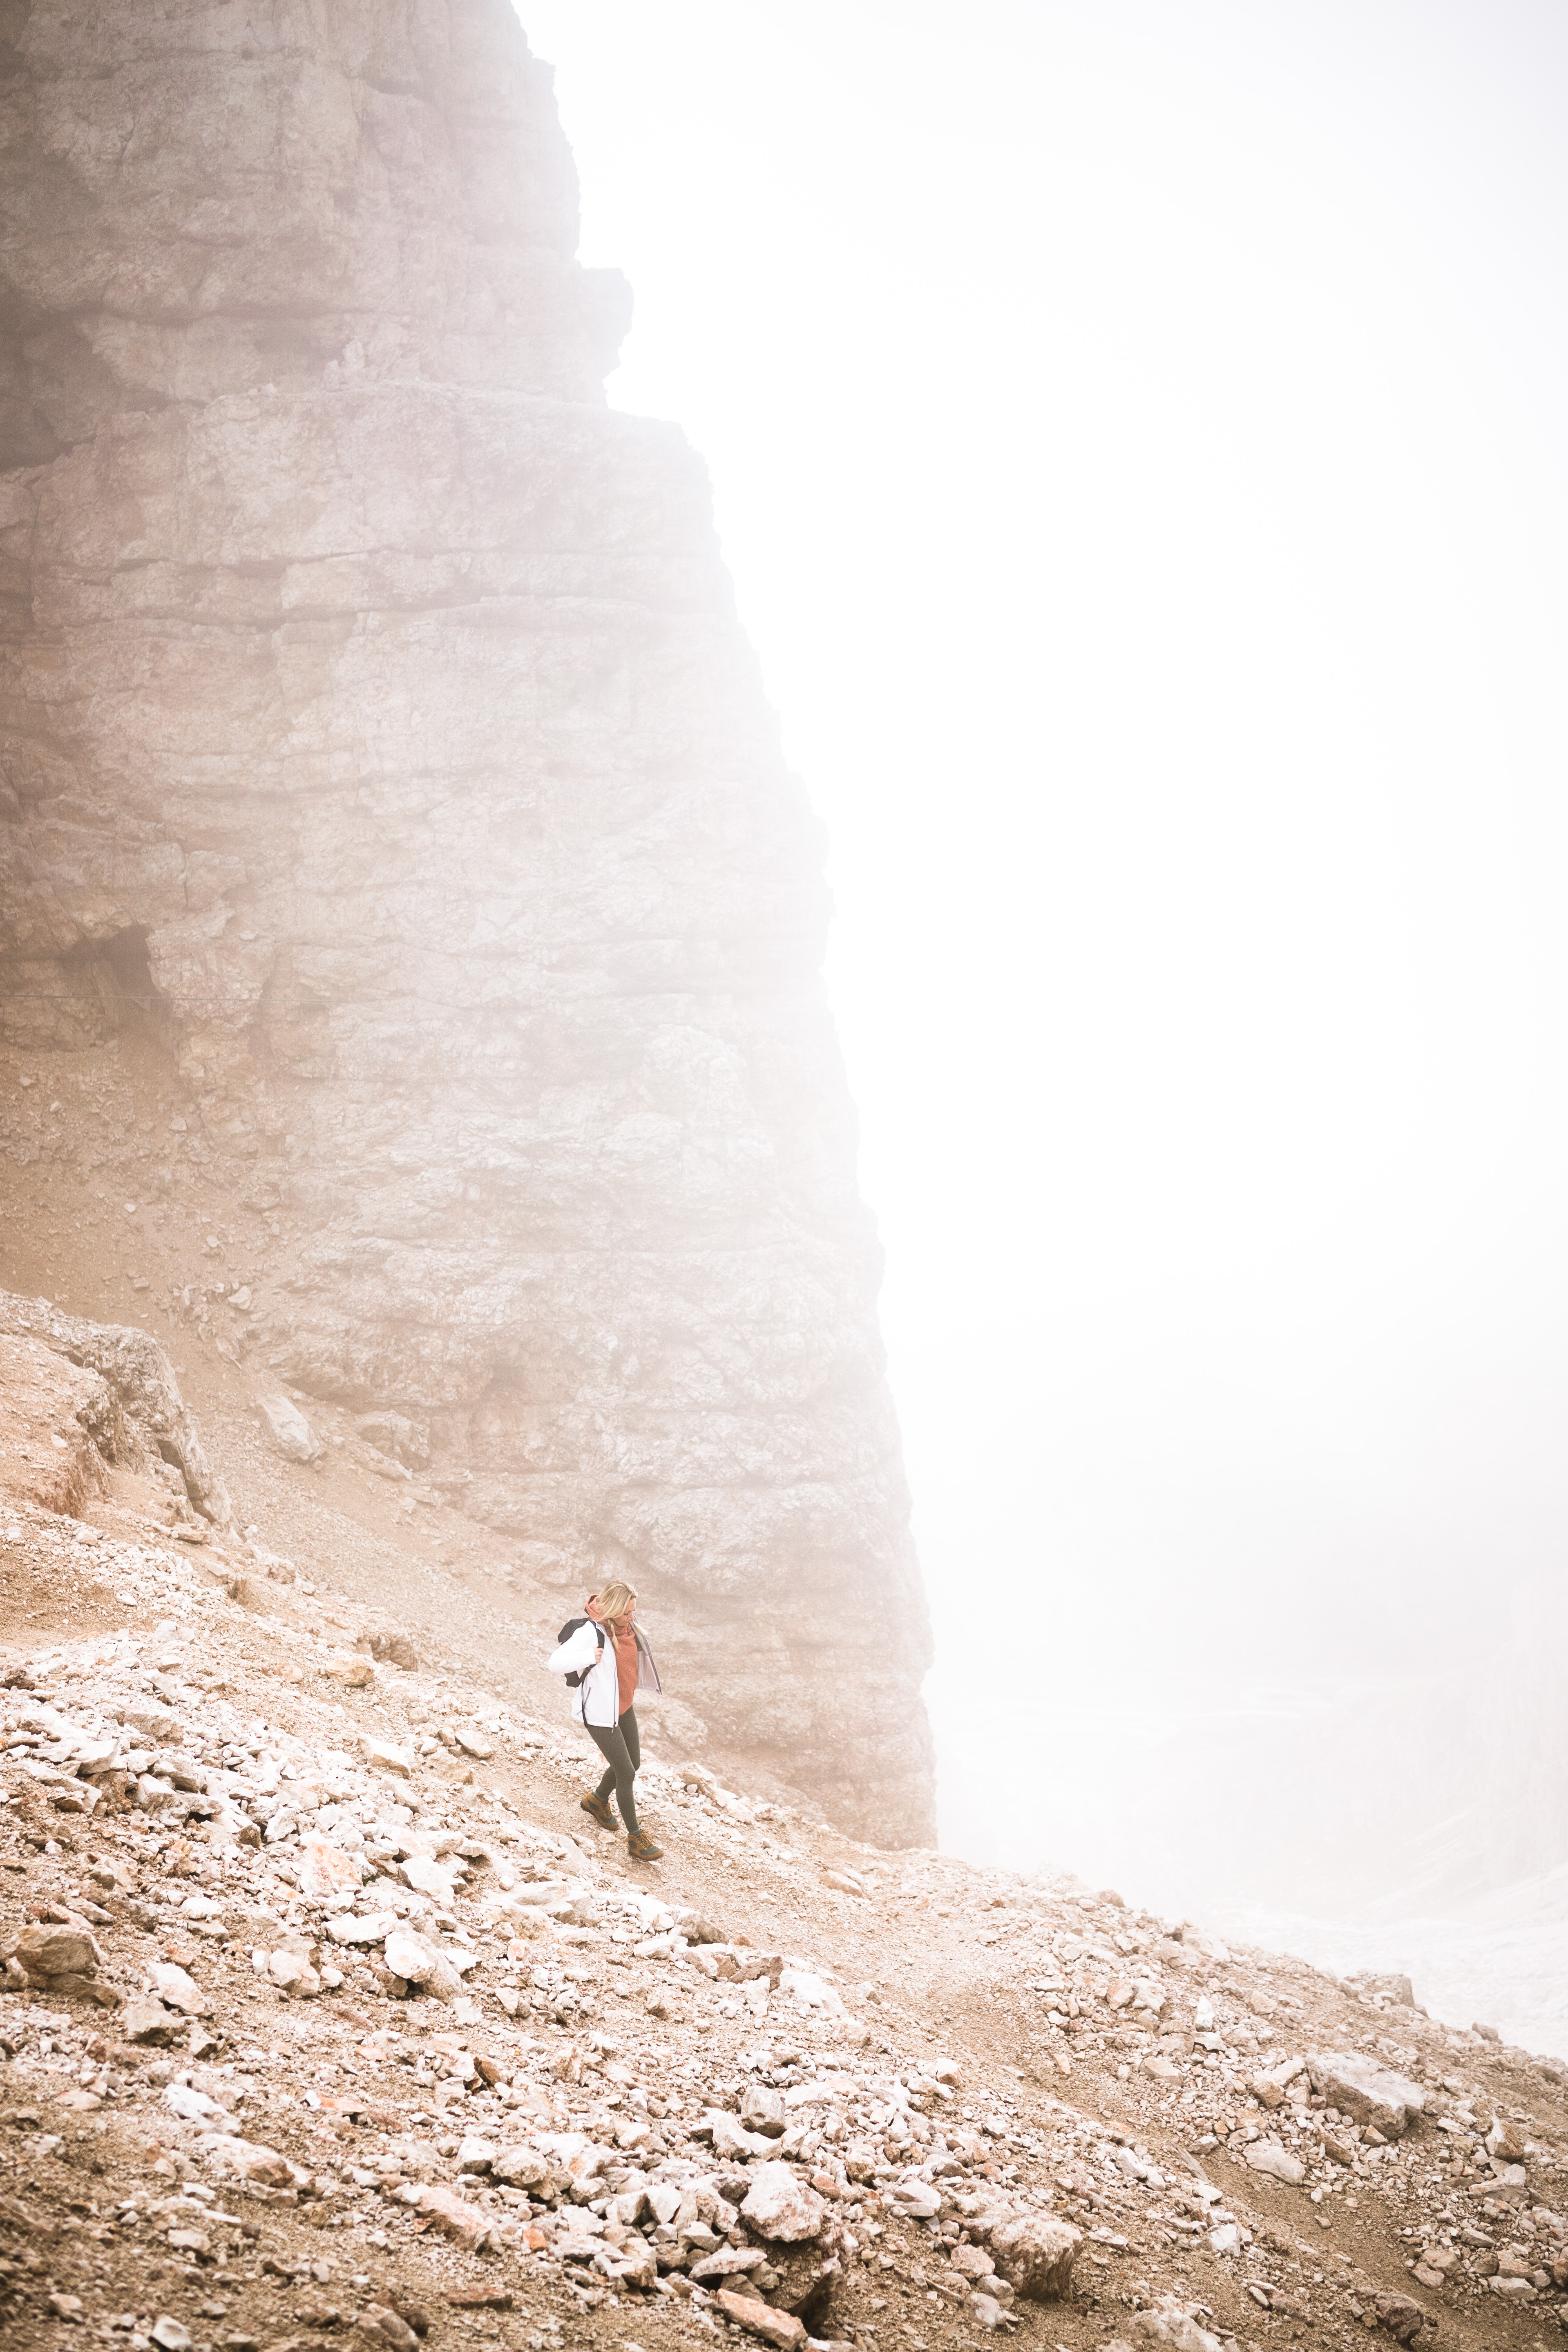 A woman hikes through a cloud in the Dolomites in northern Italy